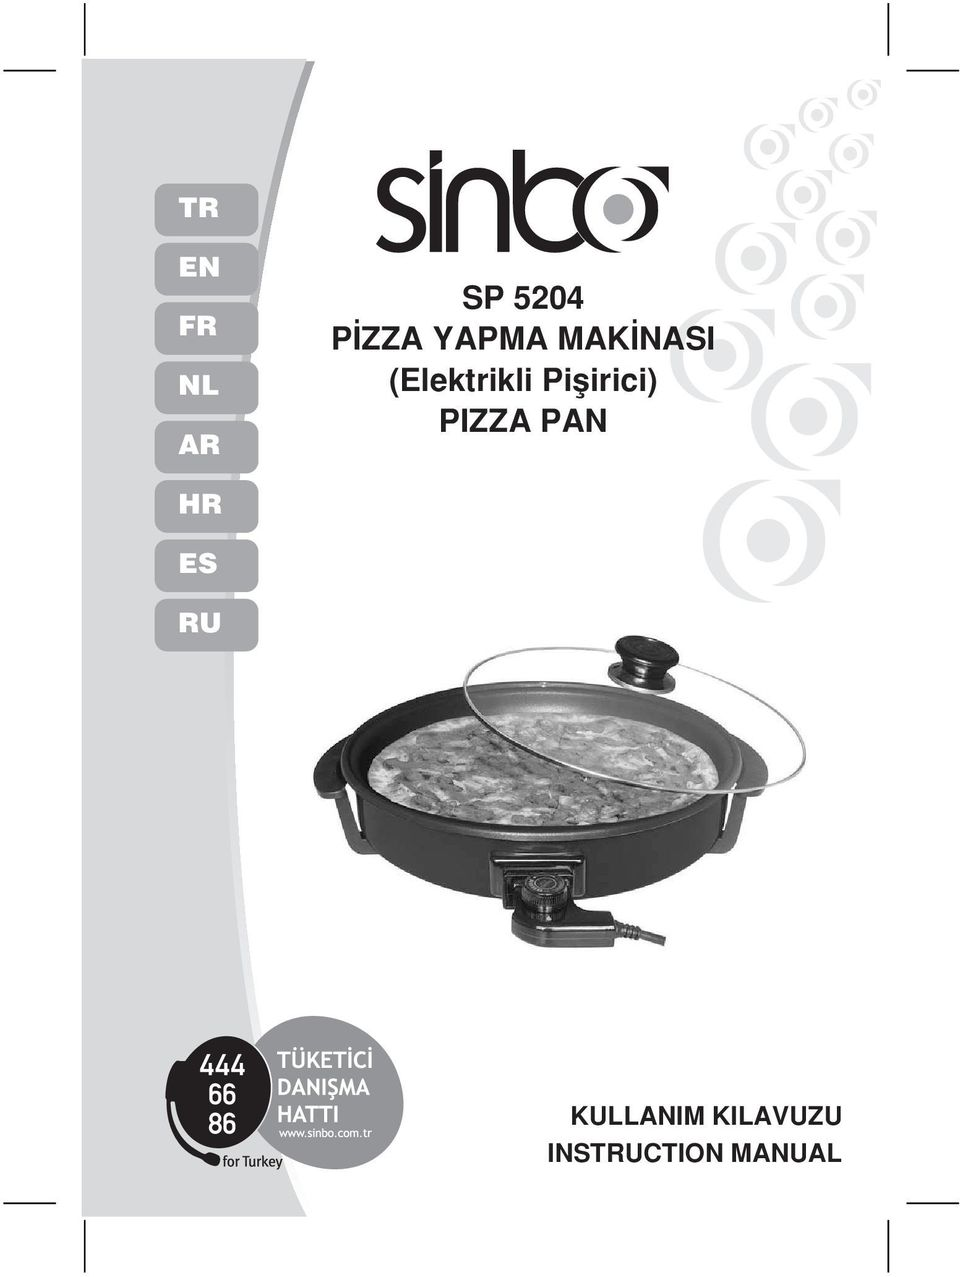 Piflirici) PIZZA PAN HR ES RU